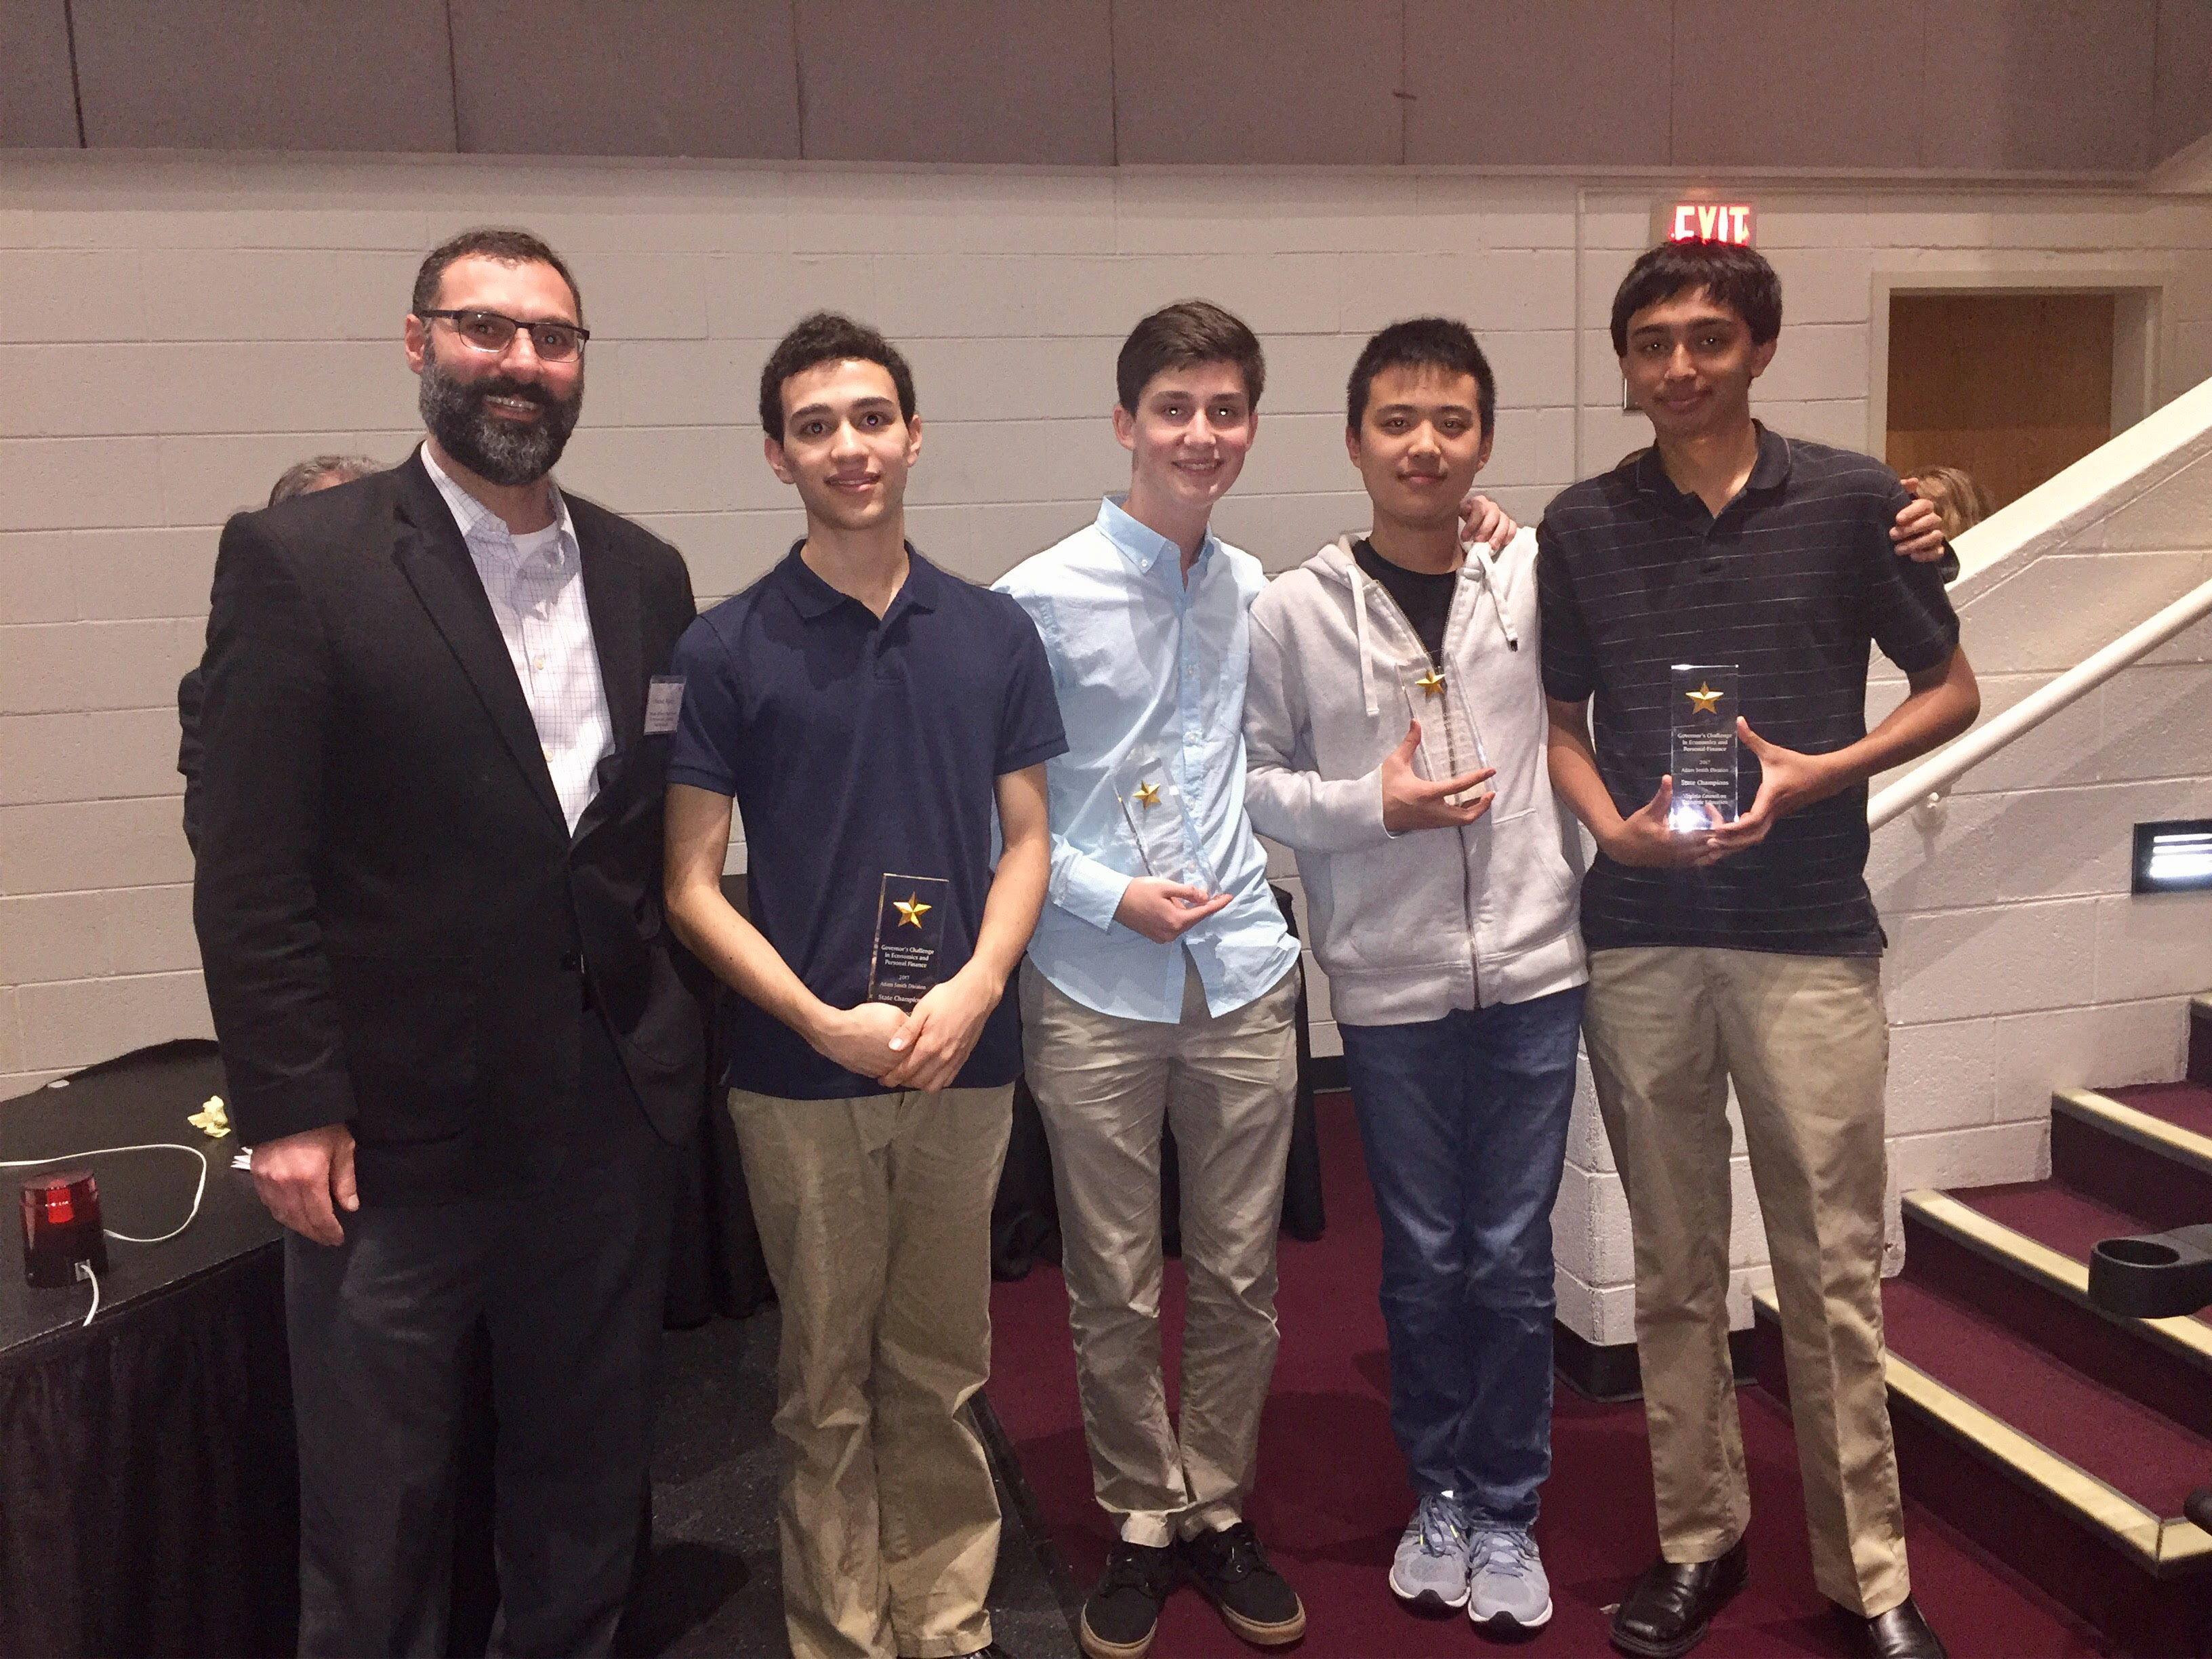 Thomas Jefferson School for Science & Technology - Franklyn Wang  Mihir Patell Matthew Bacon Kai Amelung